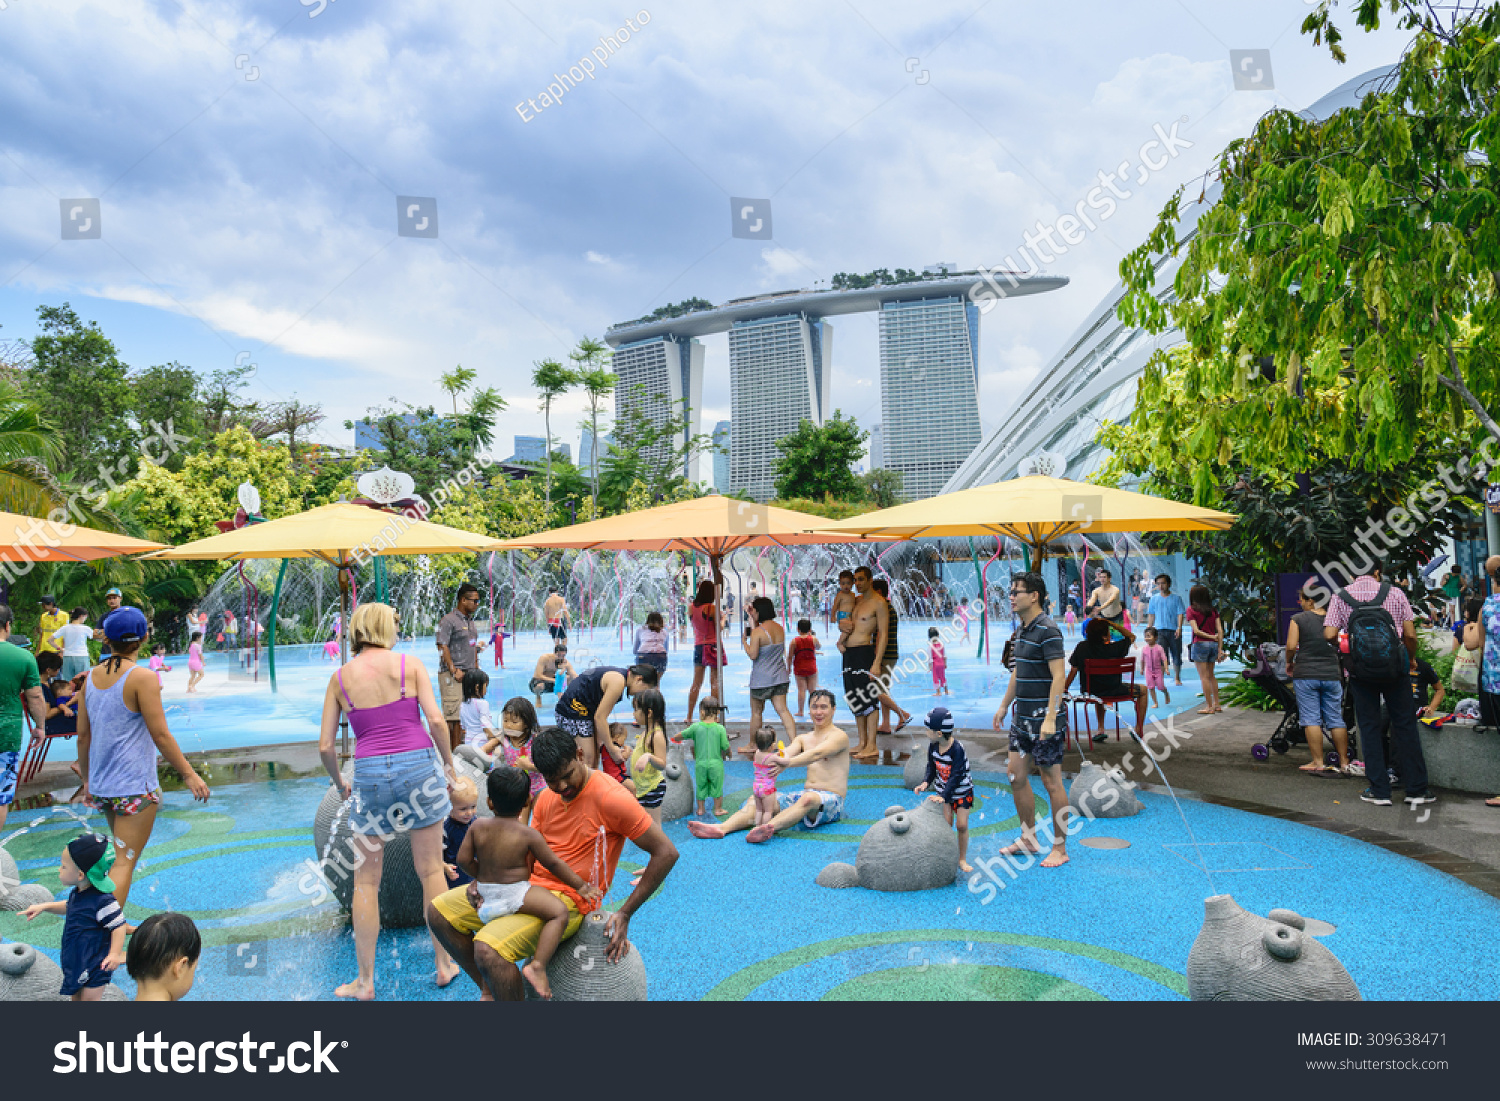 singaporemay30th2015on a hot day and a public holiday - Garden By The Bay Water Park